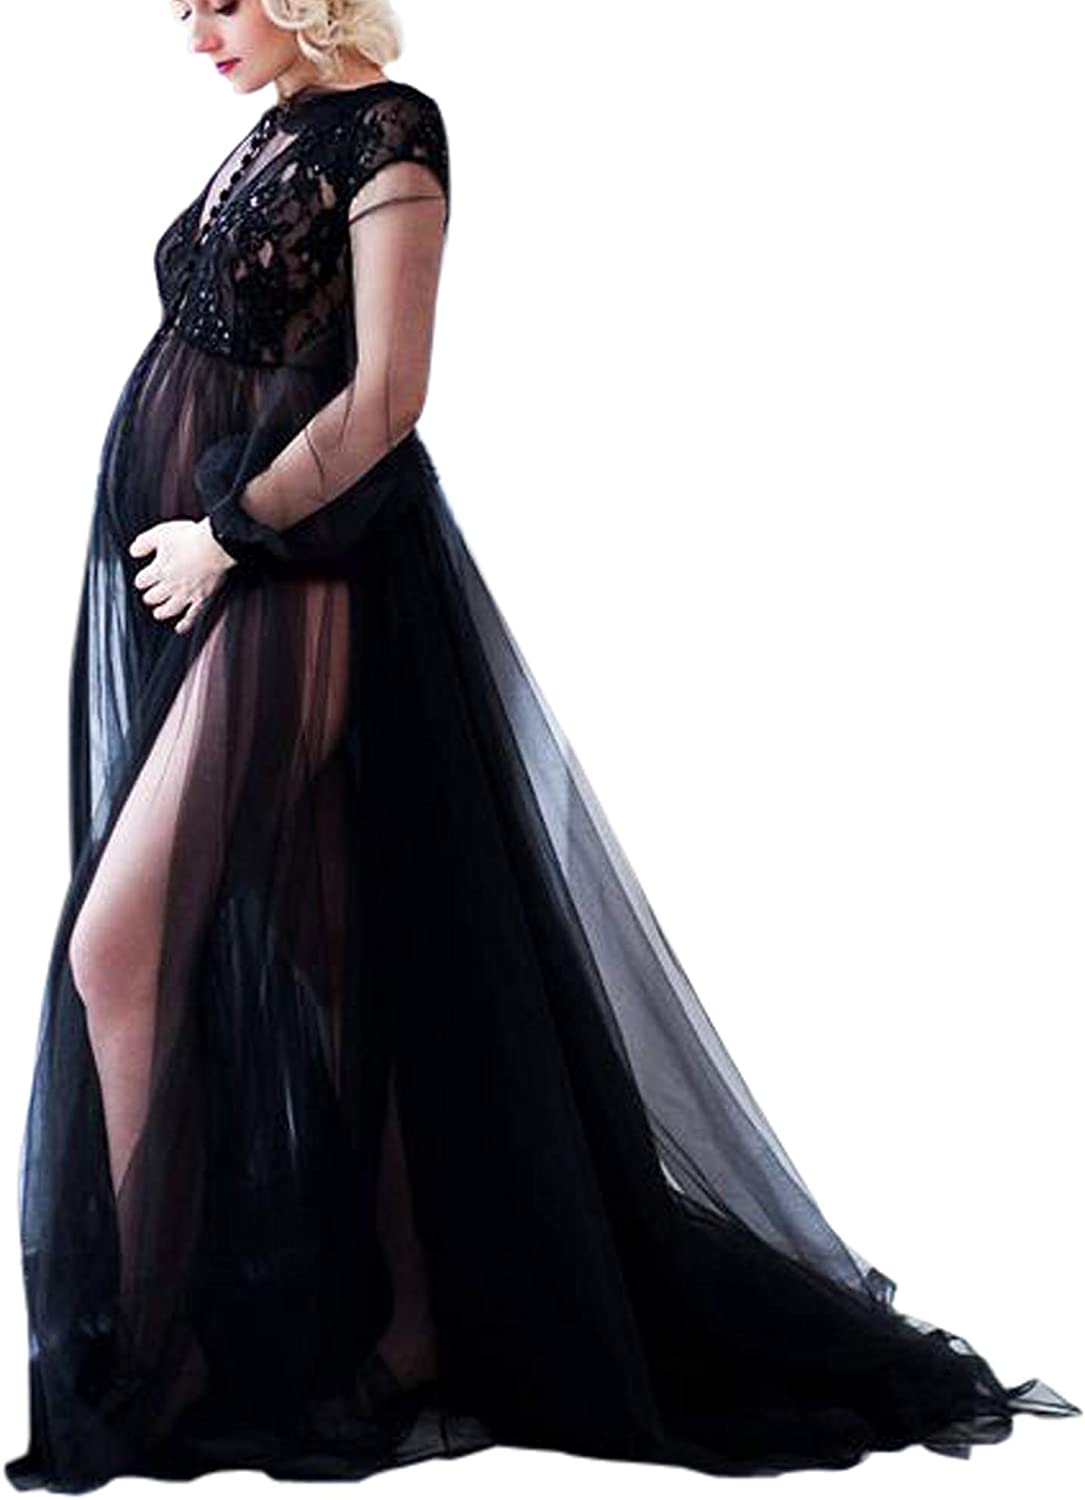 BathGown Women Lace Up Long Sleeve Maternity Dress Ladies Maxi Gown Photography Photo Shoot Clothing Clothes